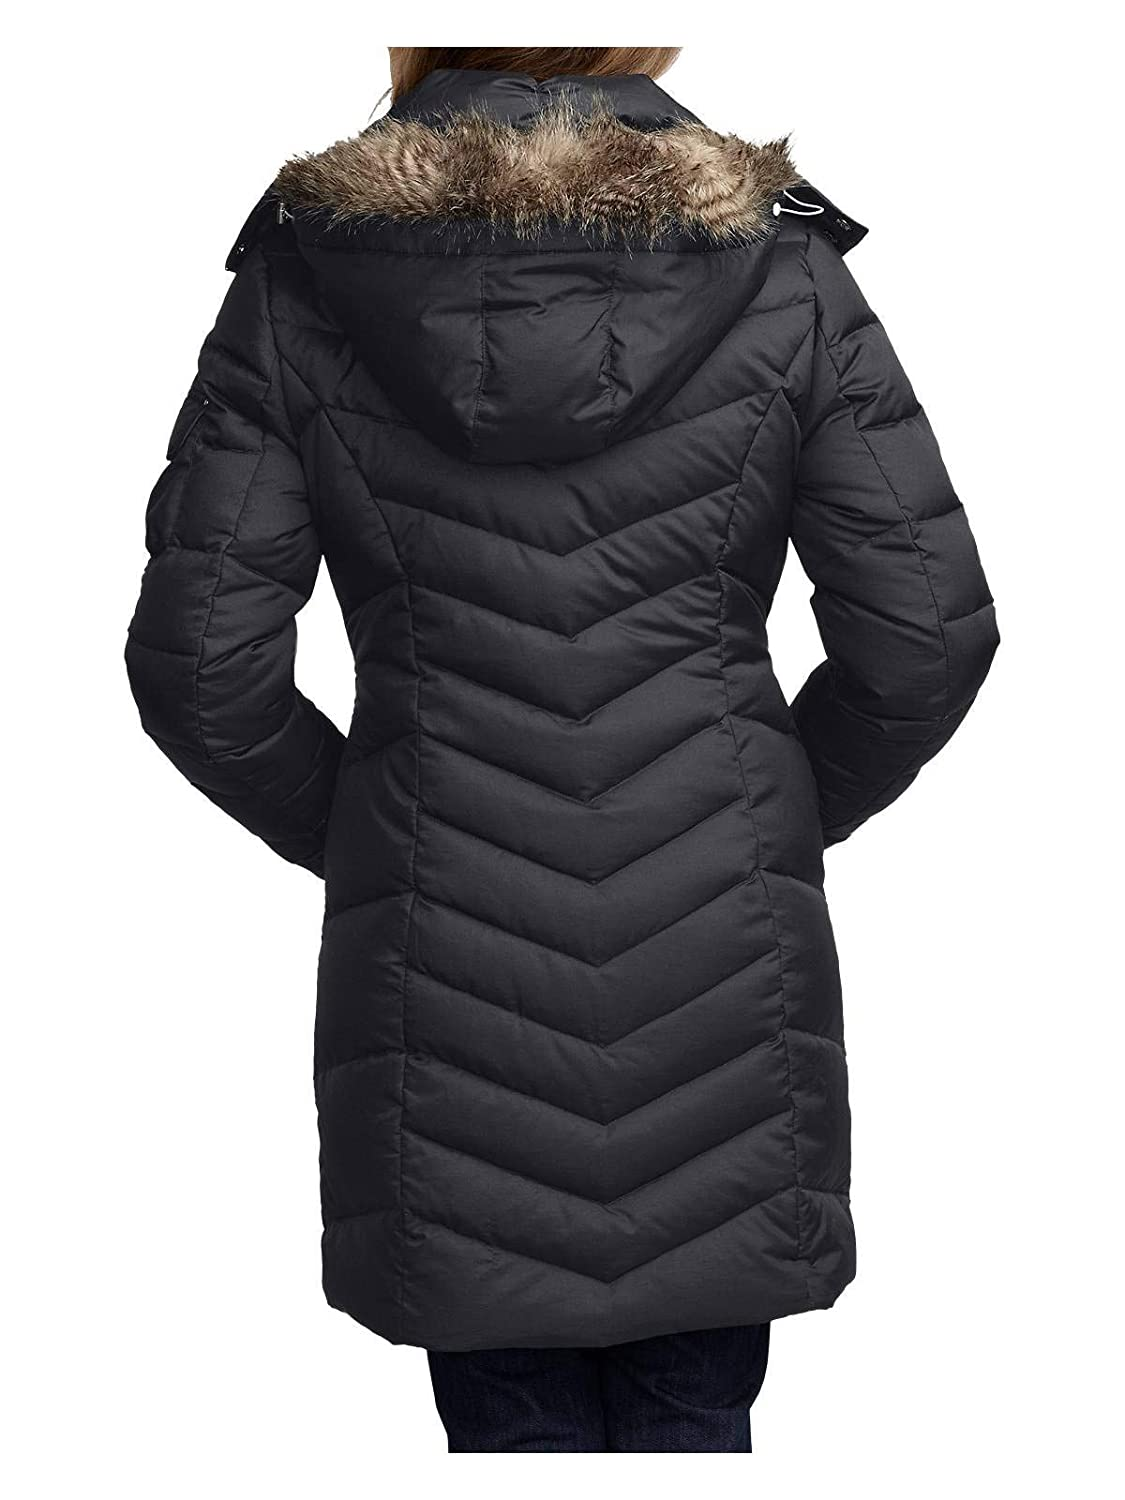 c85b7702da Amazon.com  Eddie Bauer Women s Sun Valley Down Parka  Clothing